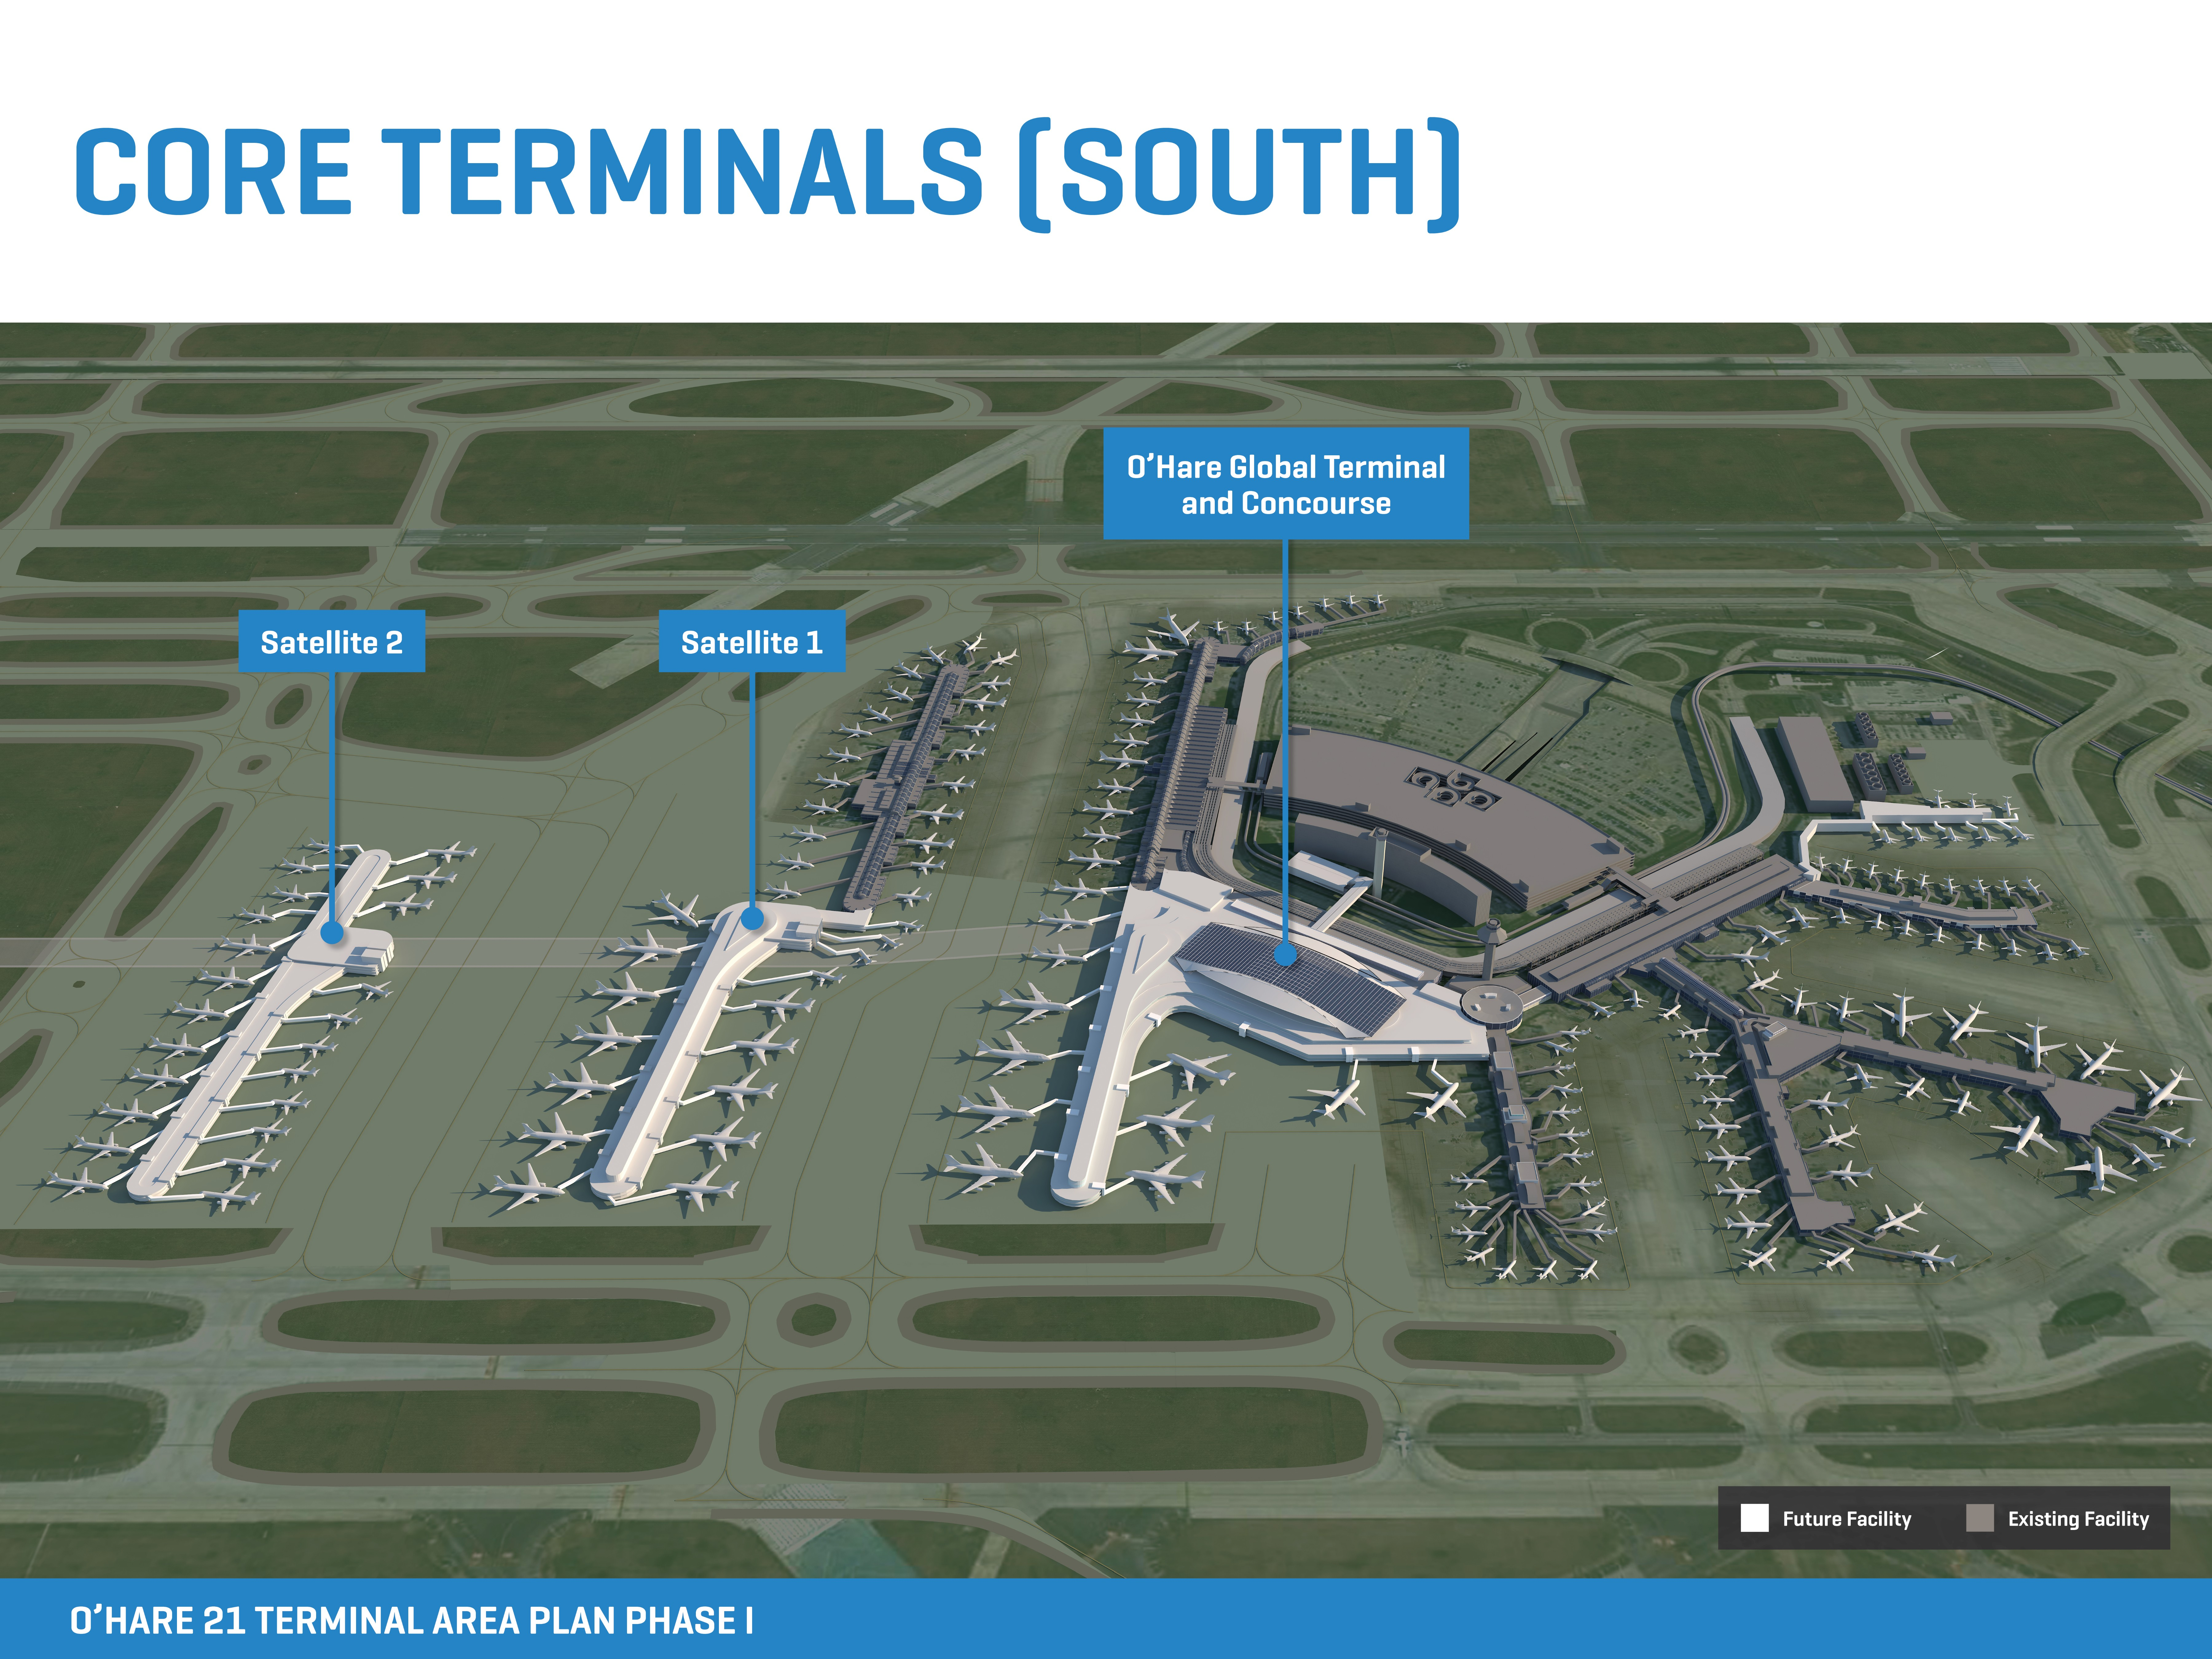 core terminal south rendering